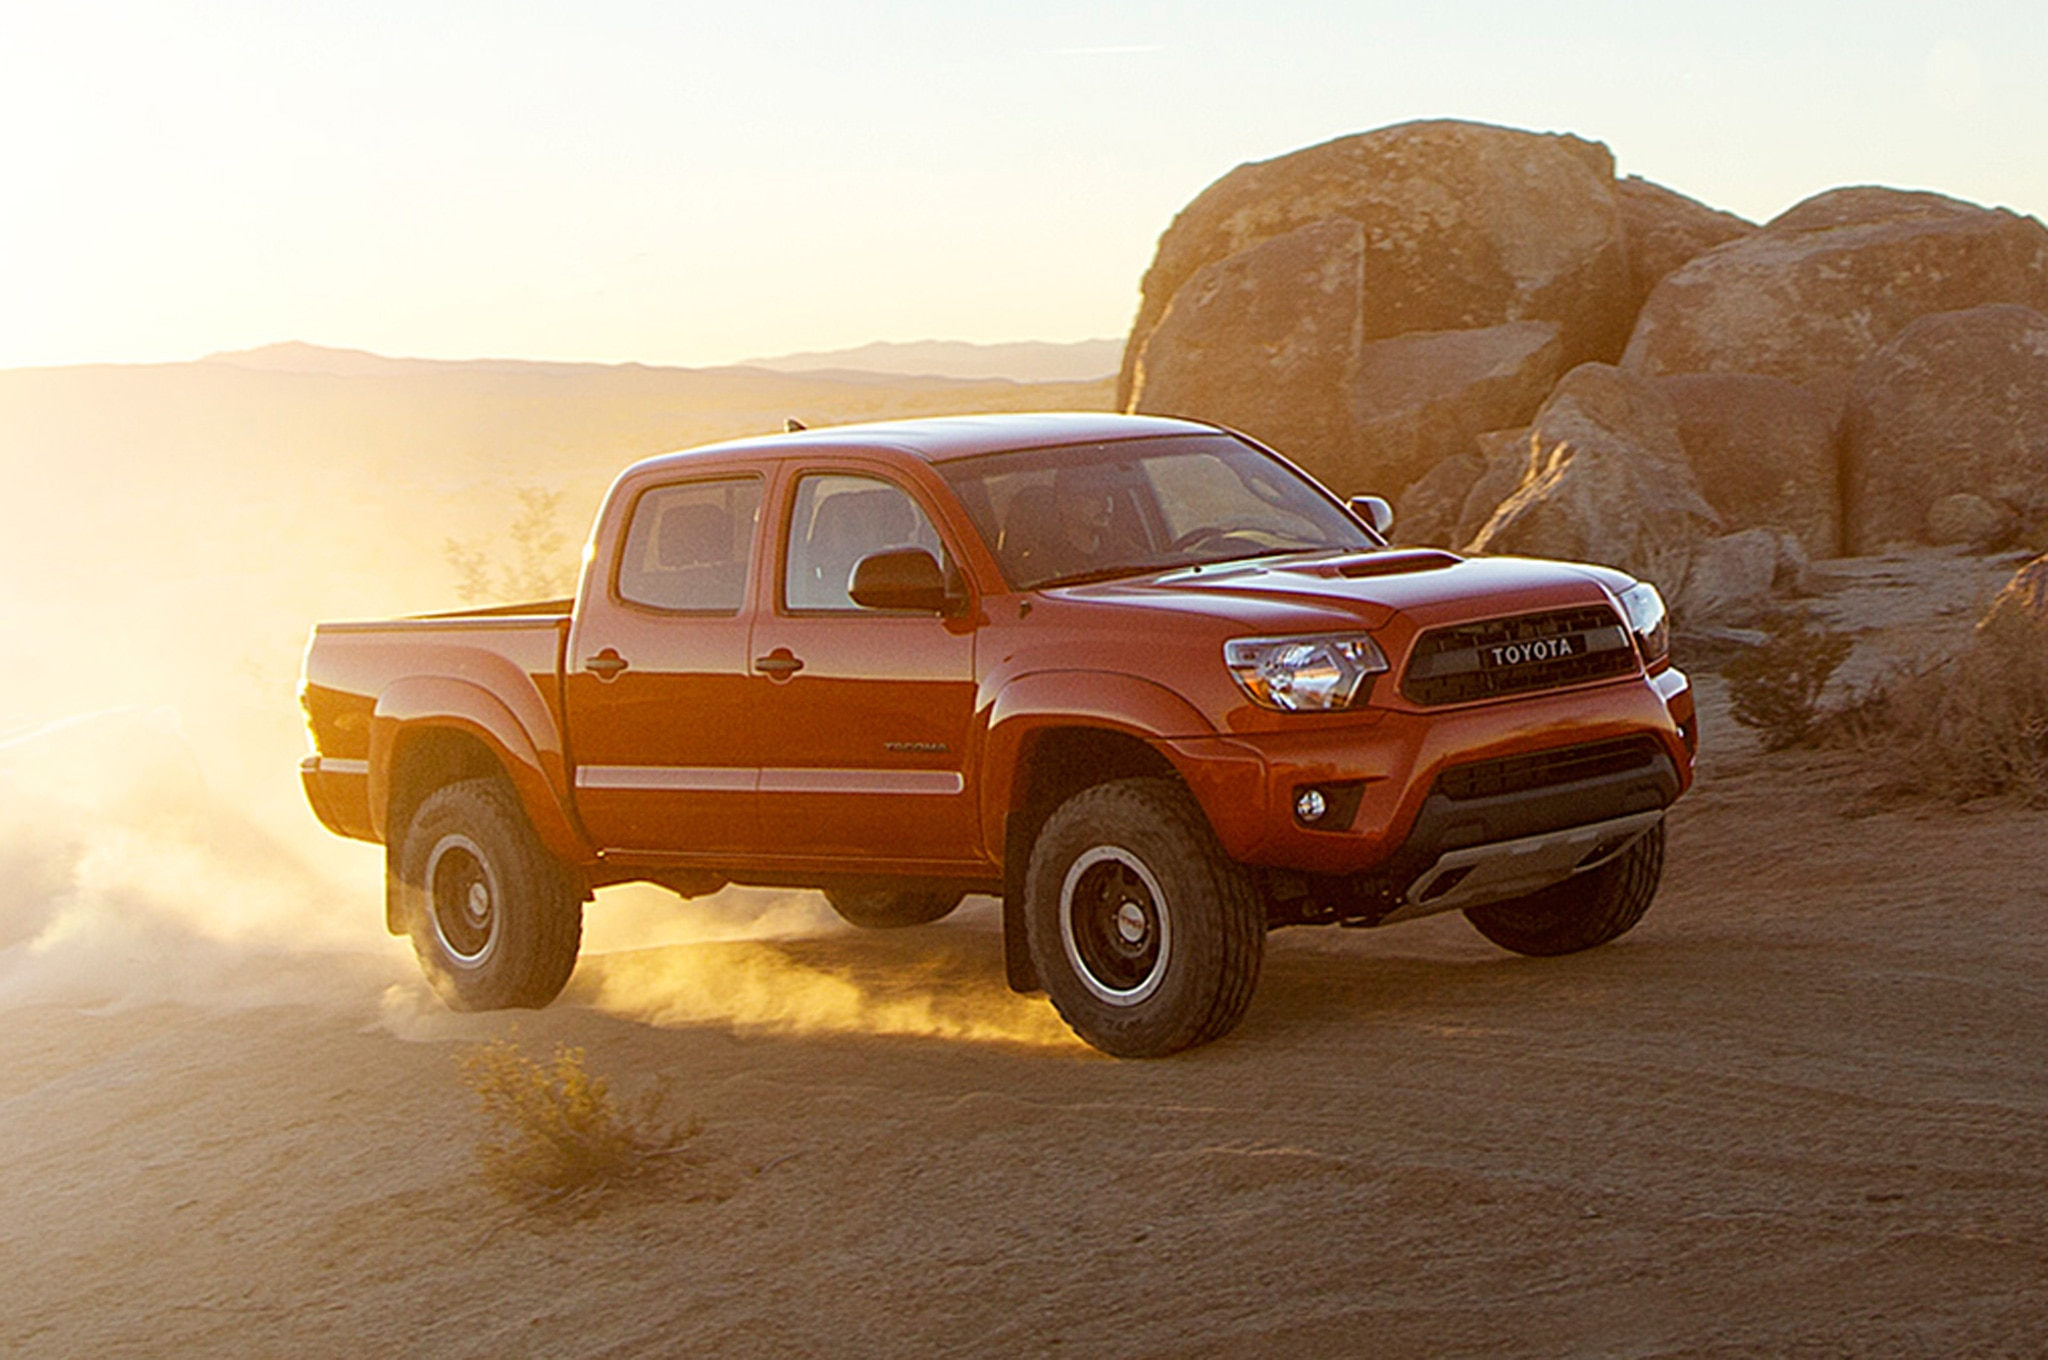 2015 Toyota Tacoma TRD Pro posing with rocks